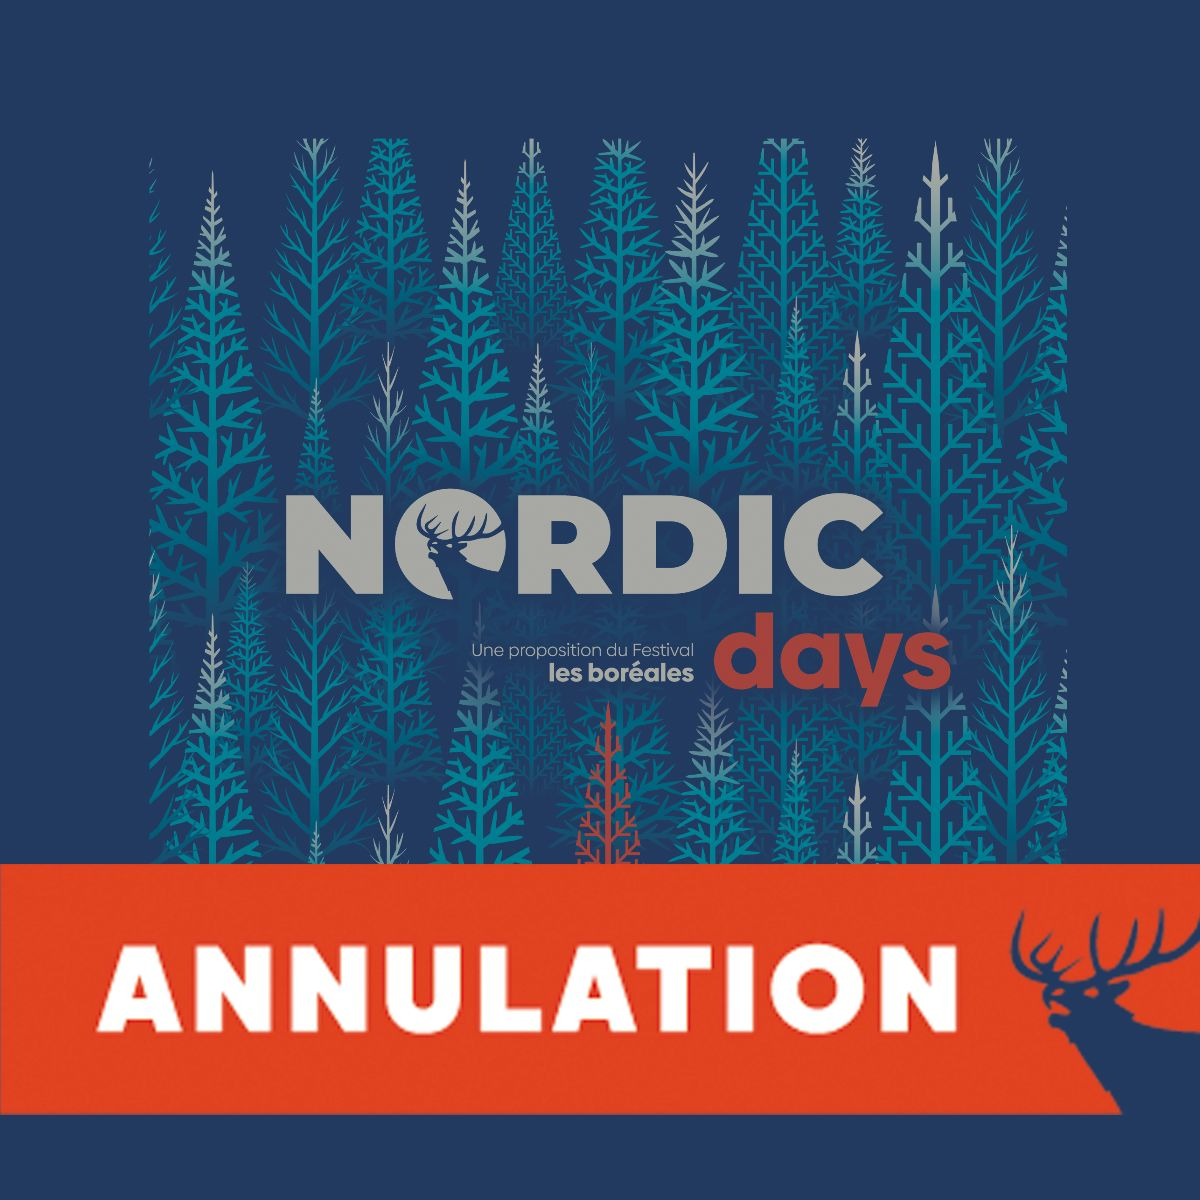 Nordic Days annulation 2020